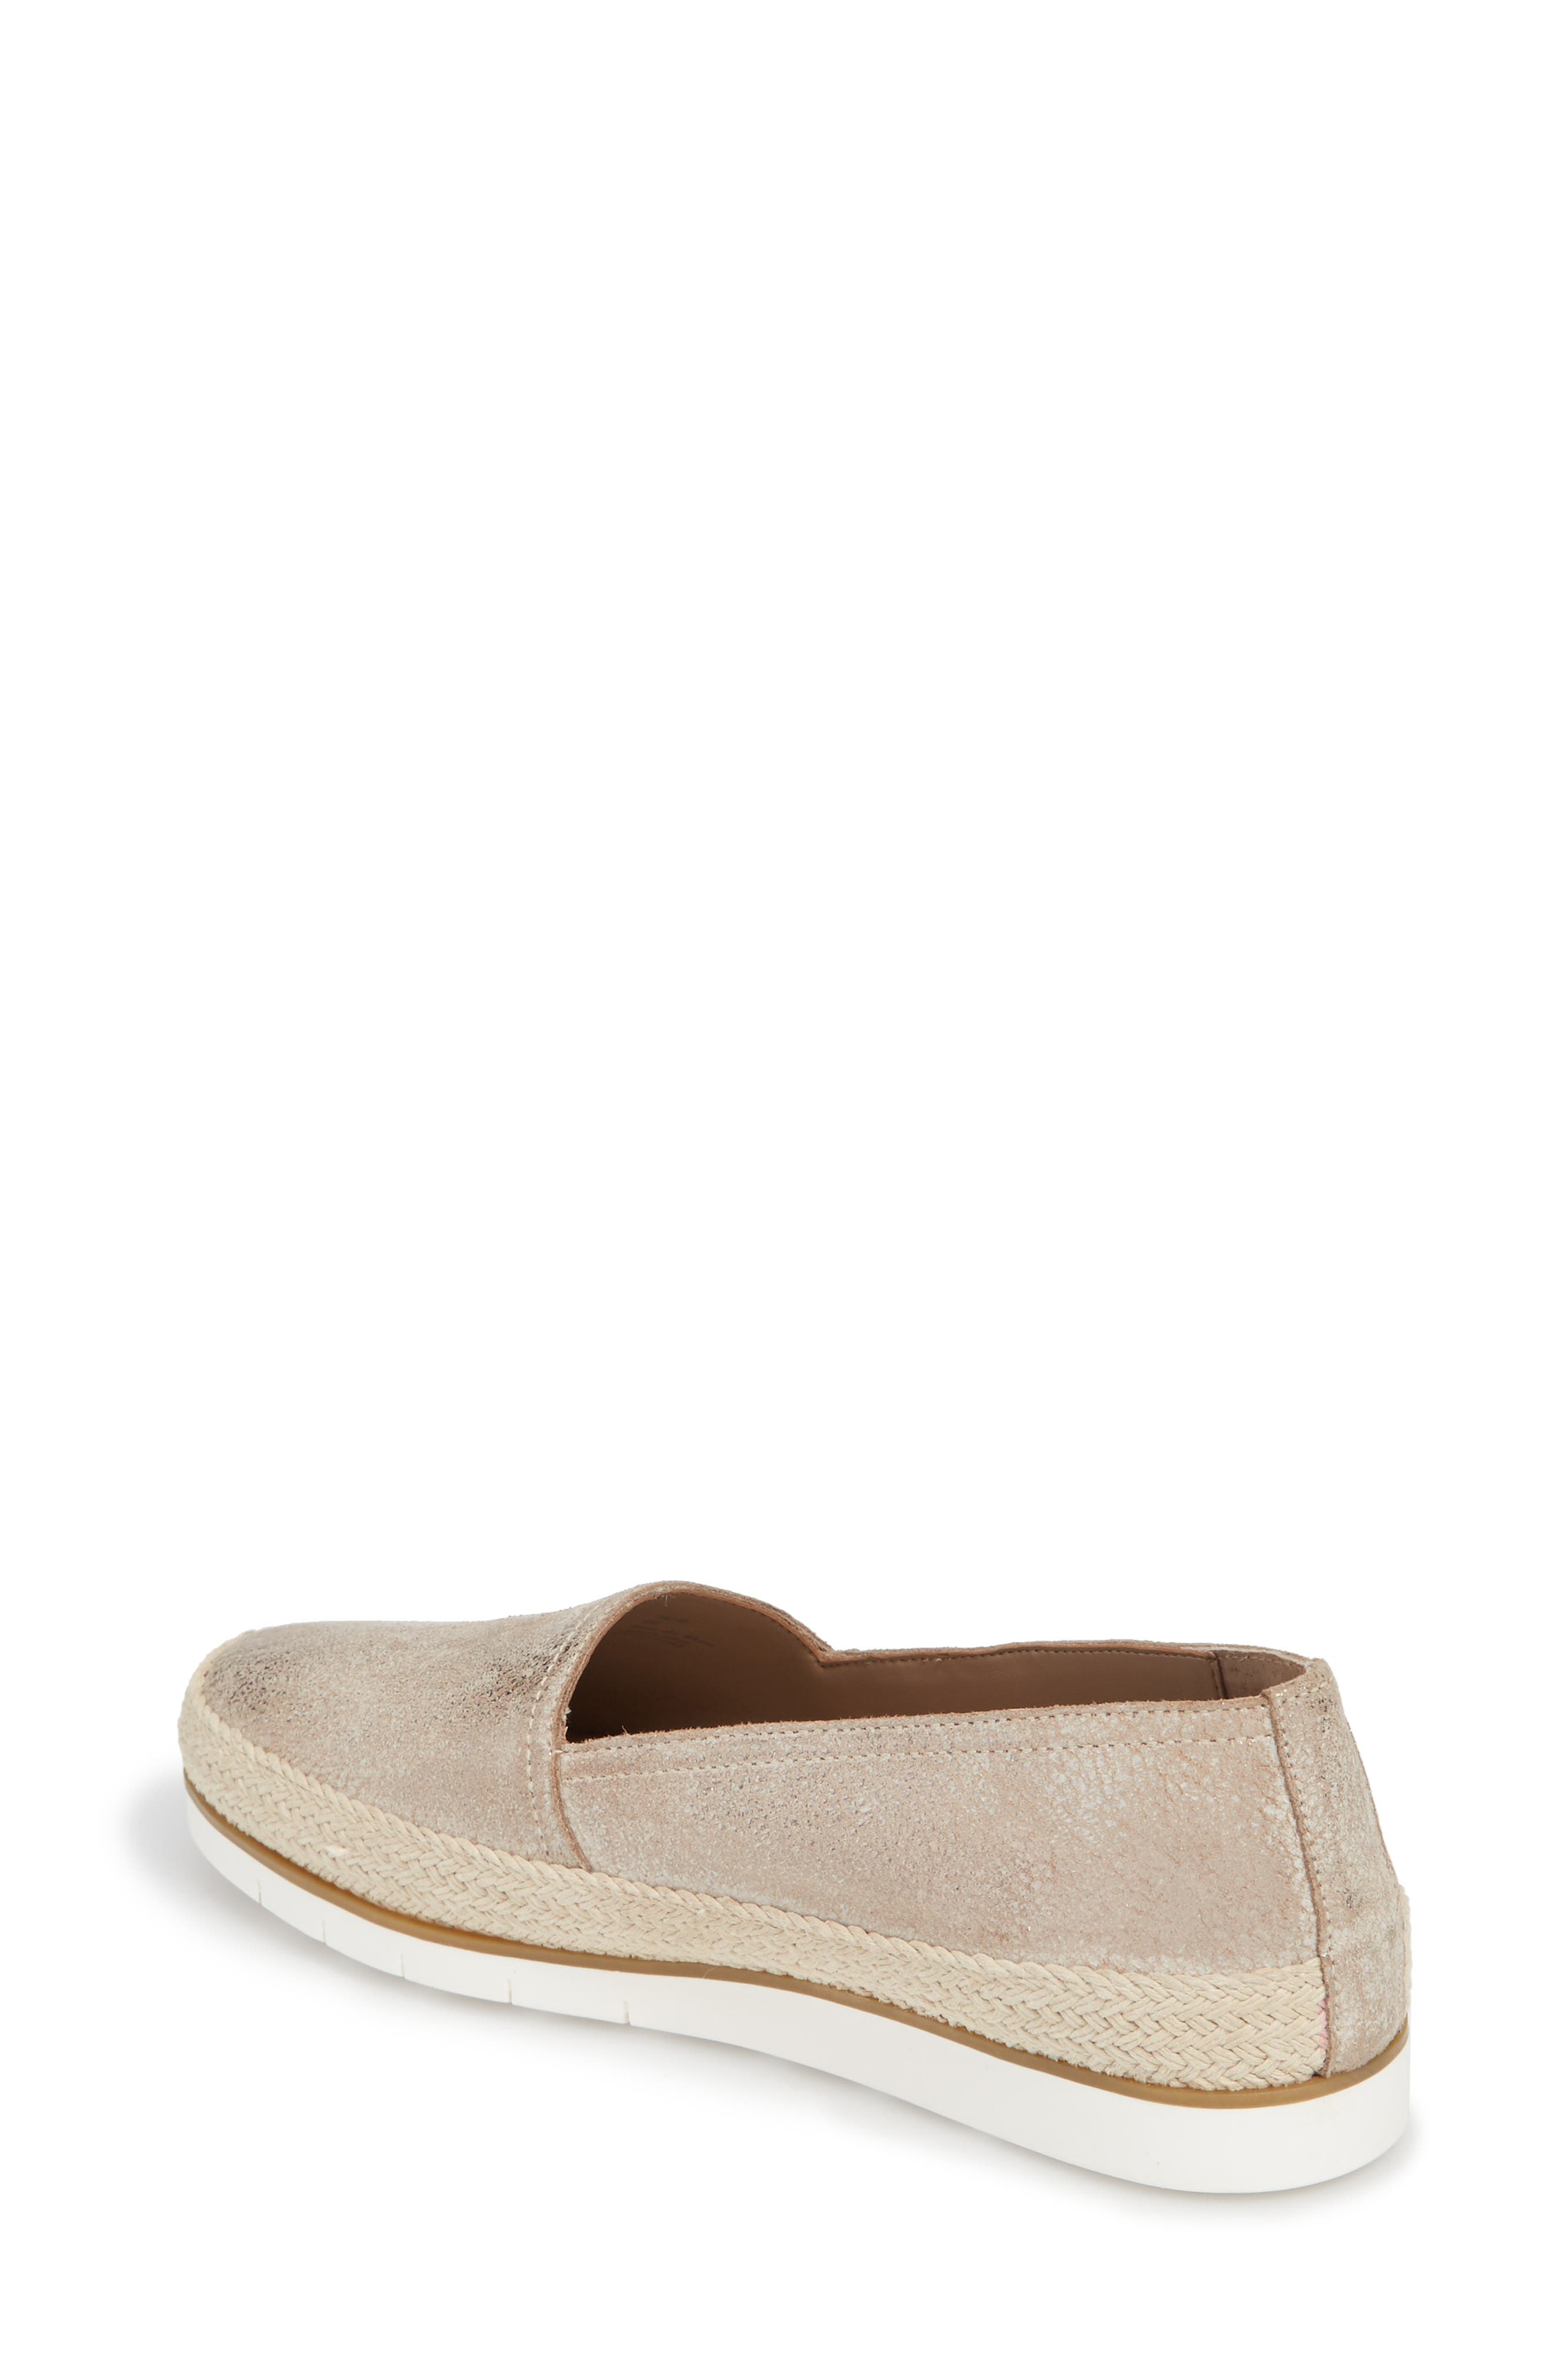 Palm Slip-On Sneaker,                             Alternate thumbnail 2, color,                             Taupe Fabric